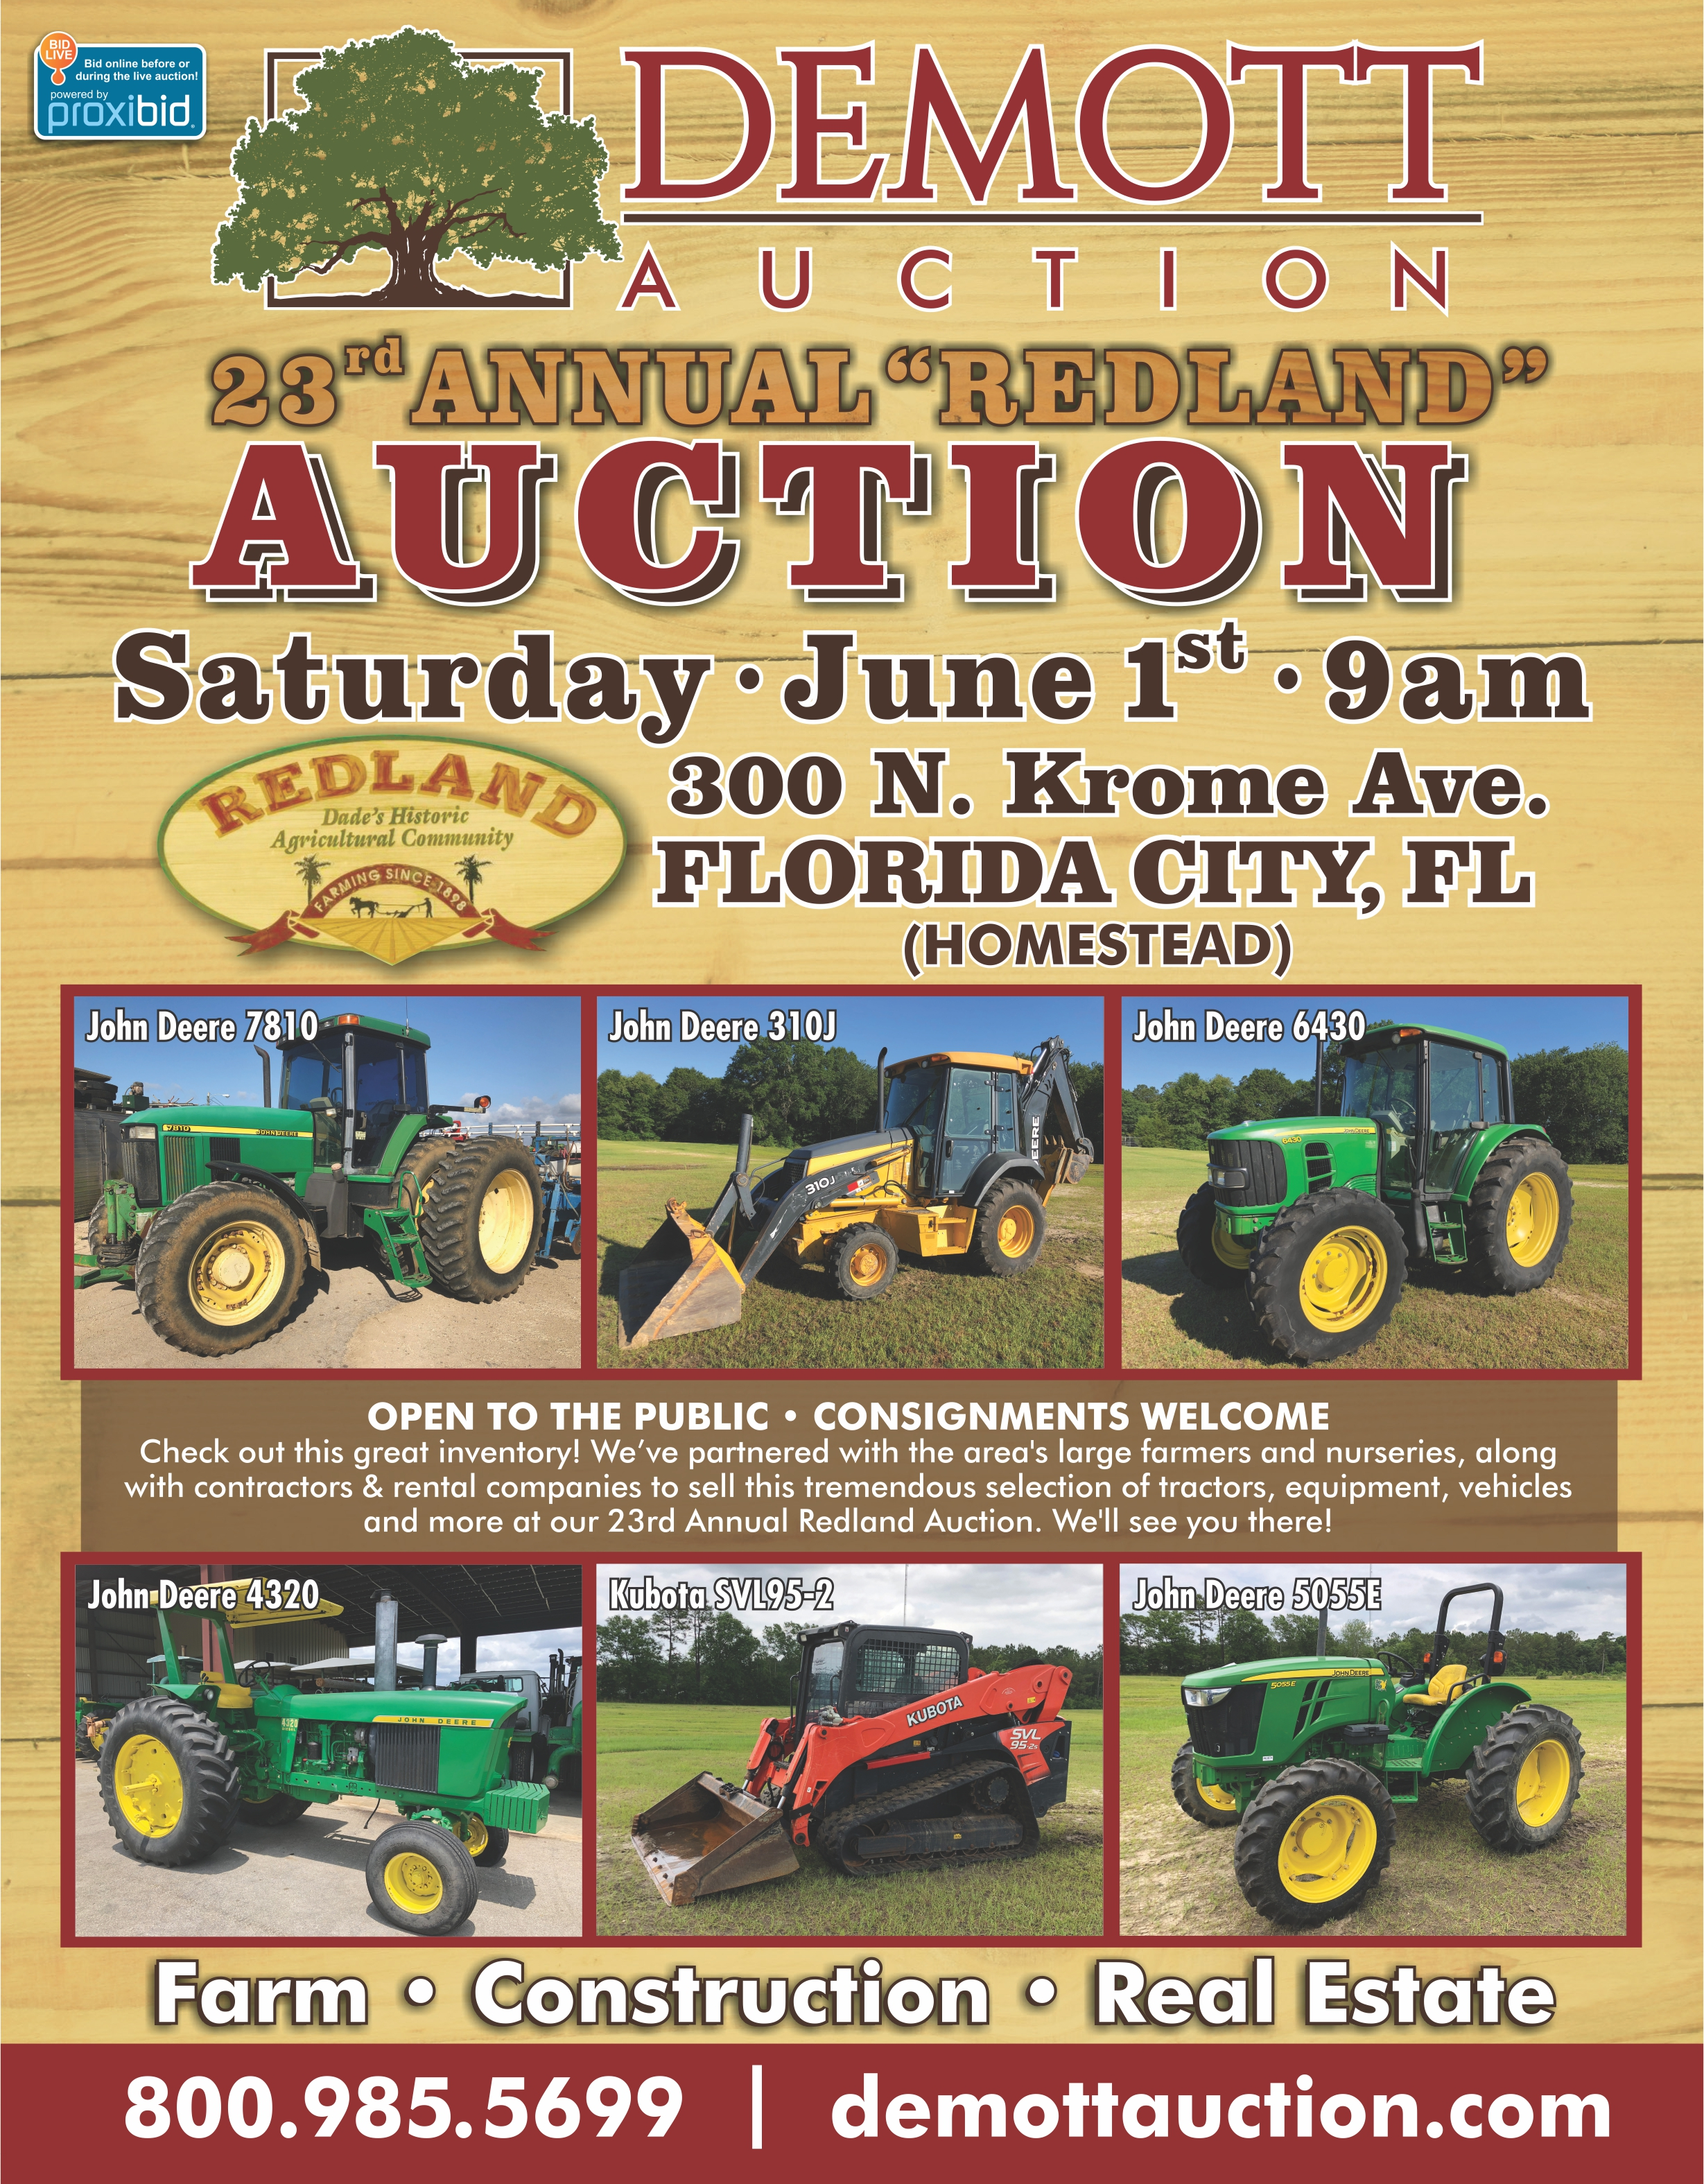 23rd Annual Redland Auction